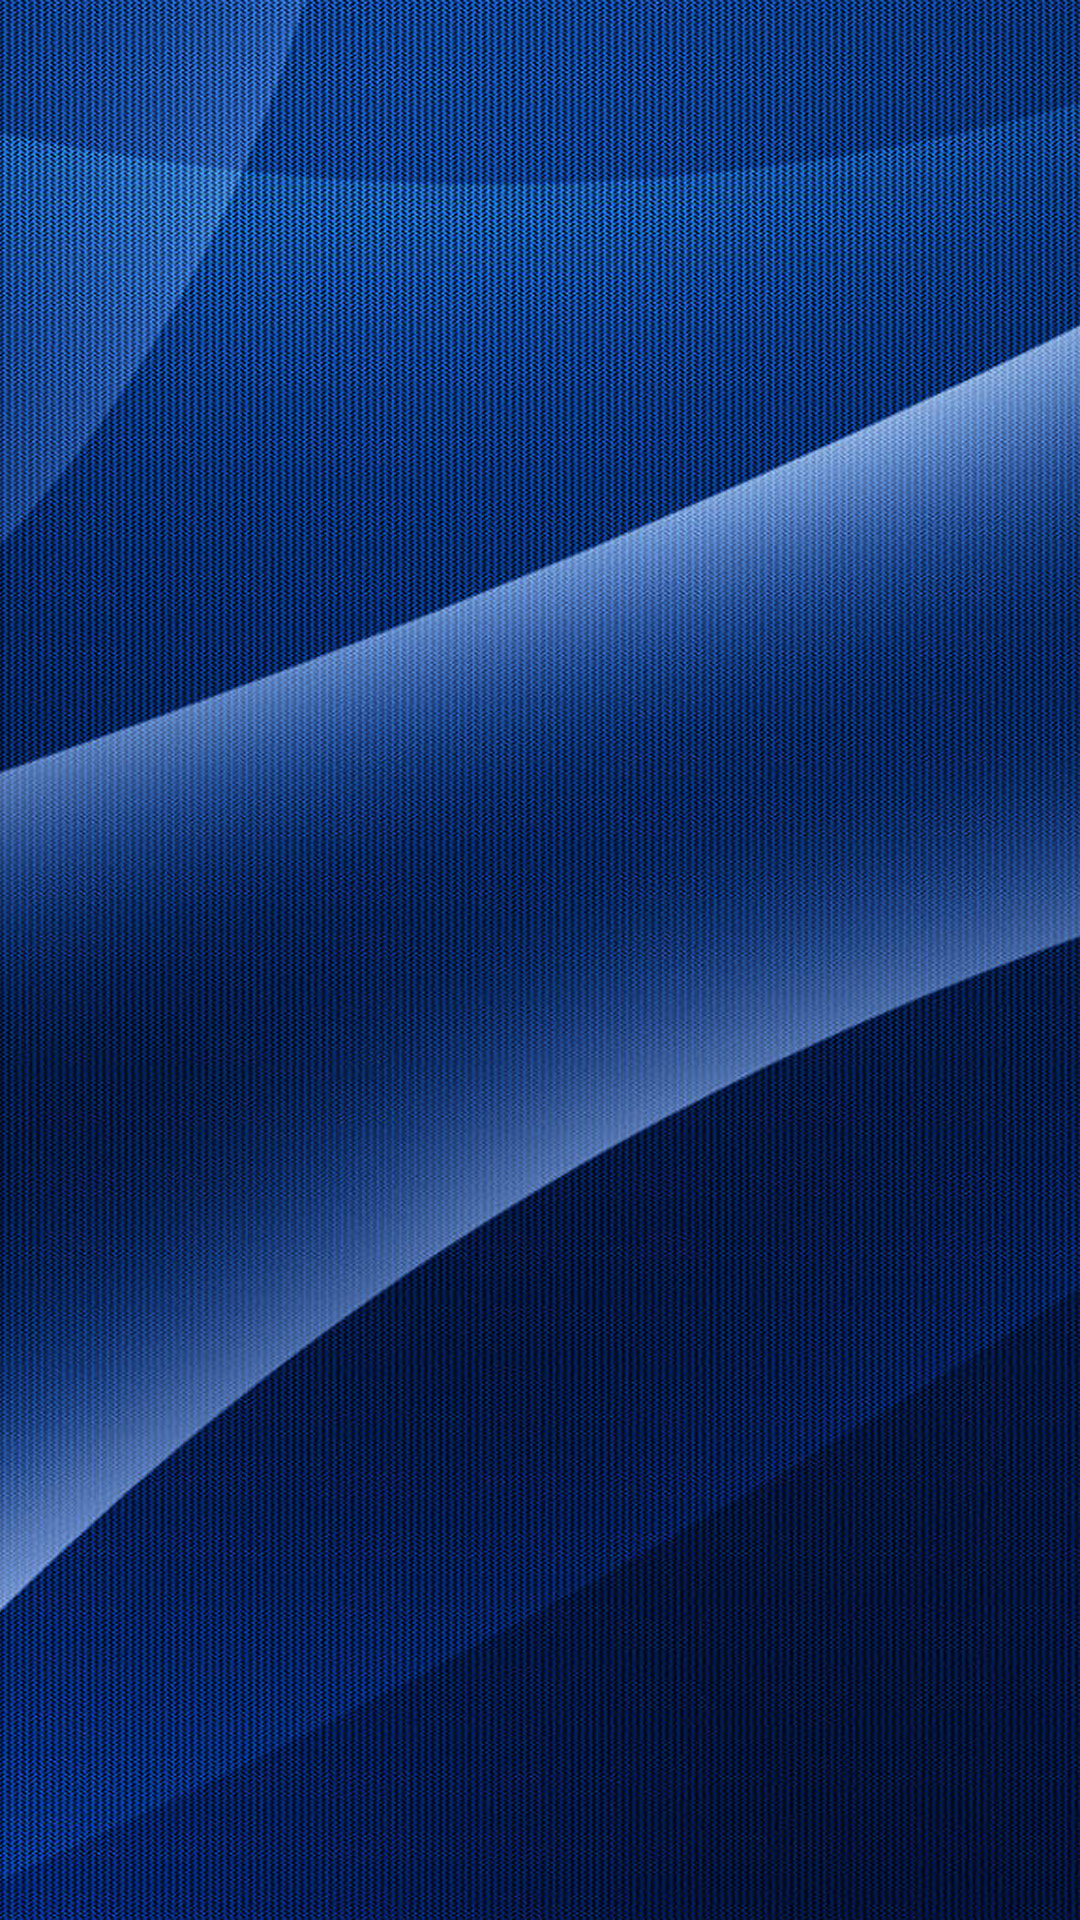 640 Koleksi Wallpaper Hp Samsung Original HD Terbaru